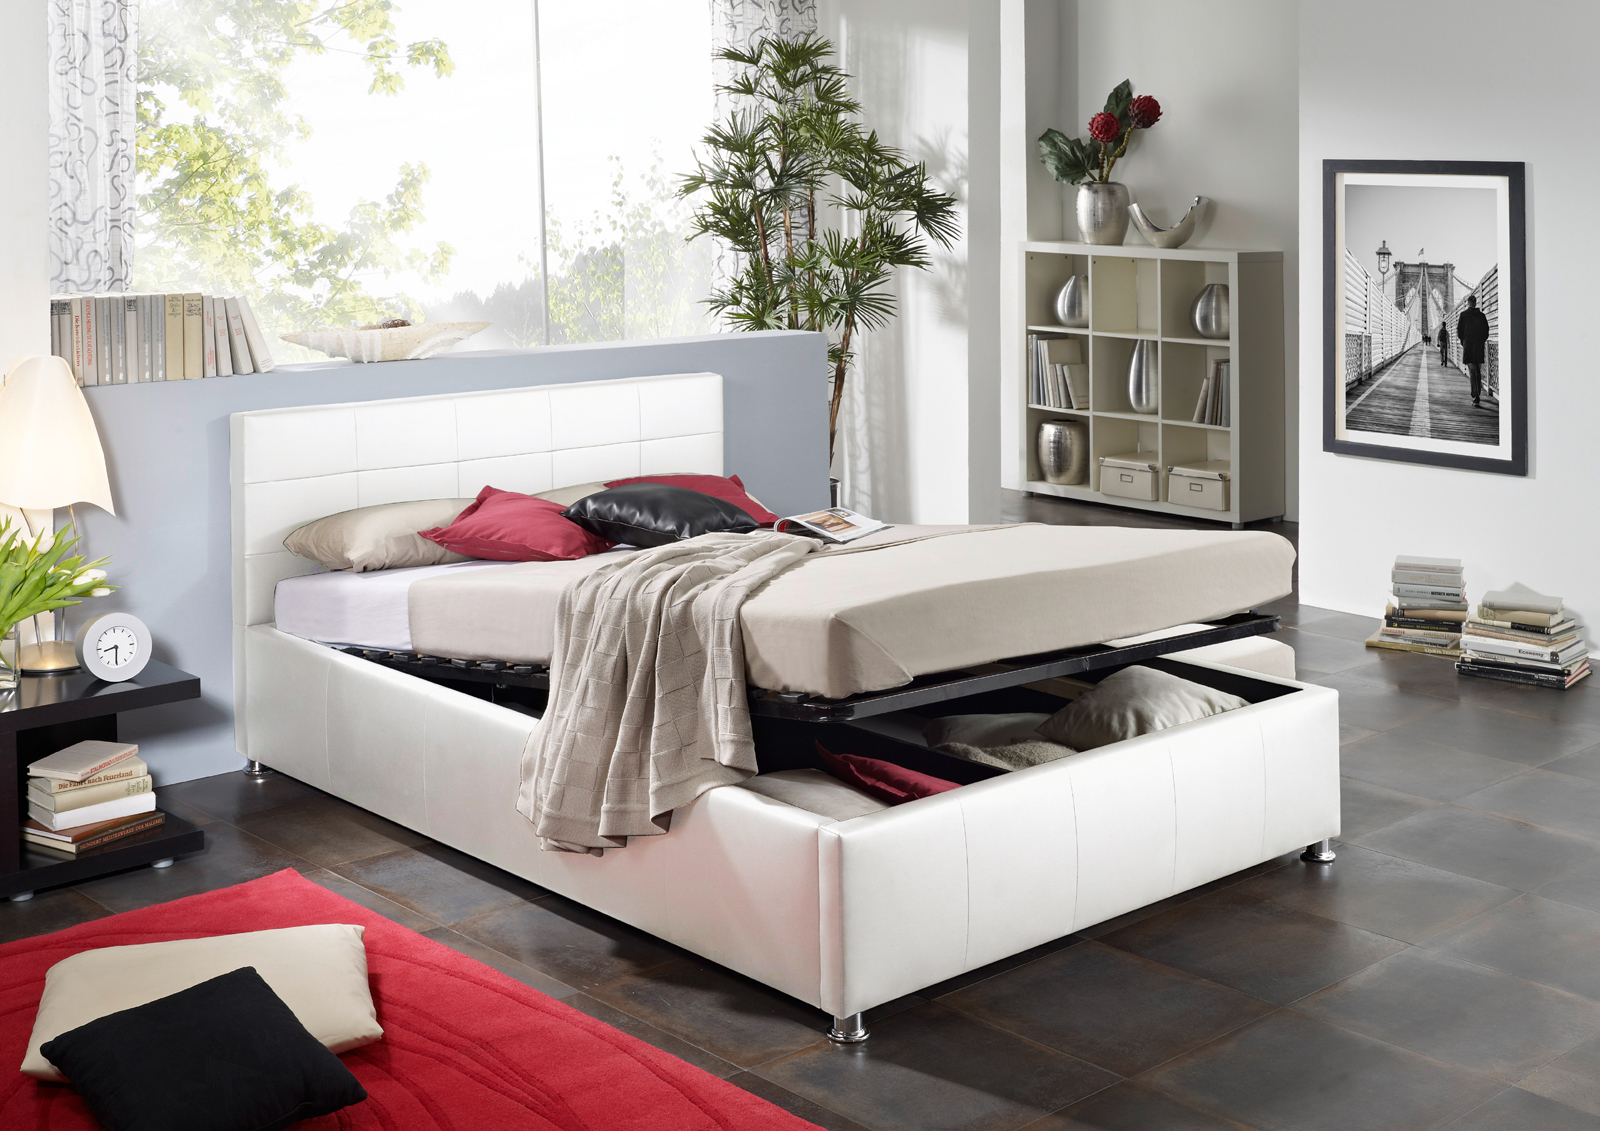 sam design bett 160 x 200 cm wei kira bettkasten. Black Bedroom Furniture Sets. Home Design Ideas